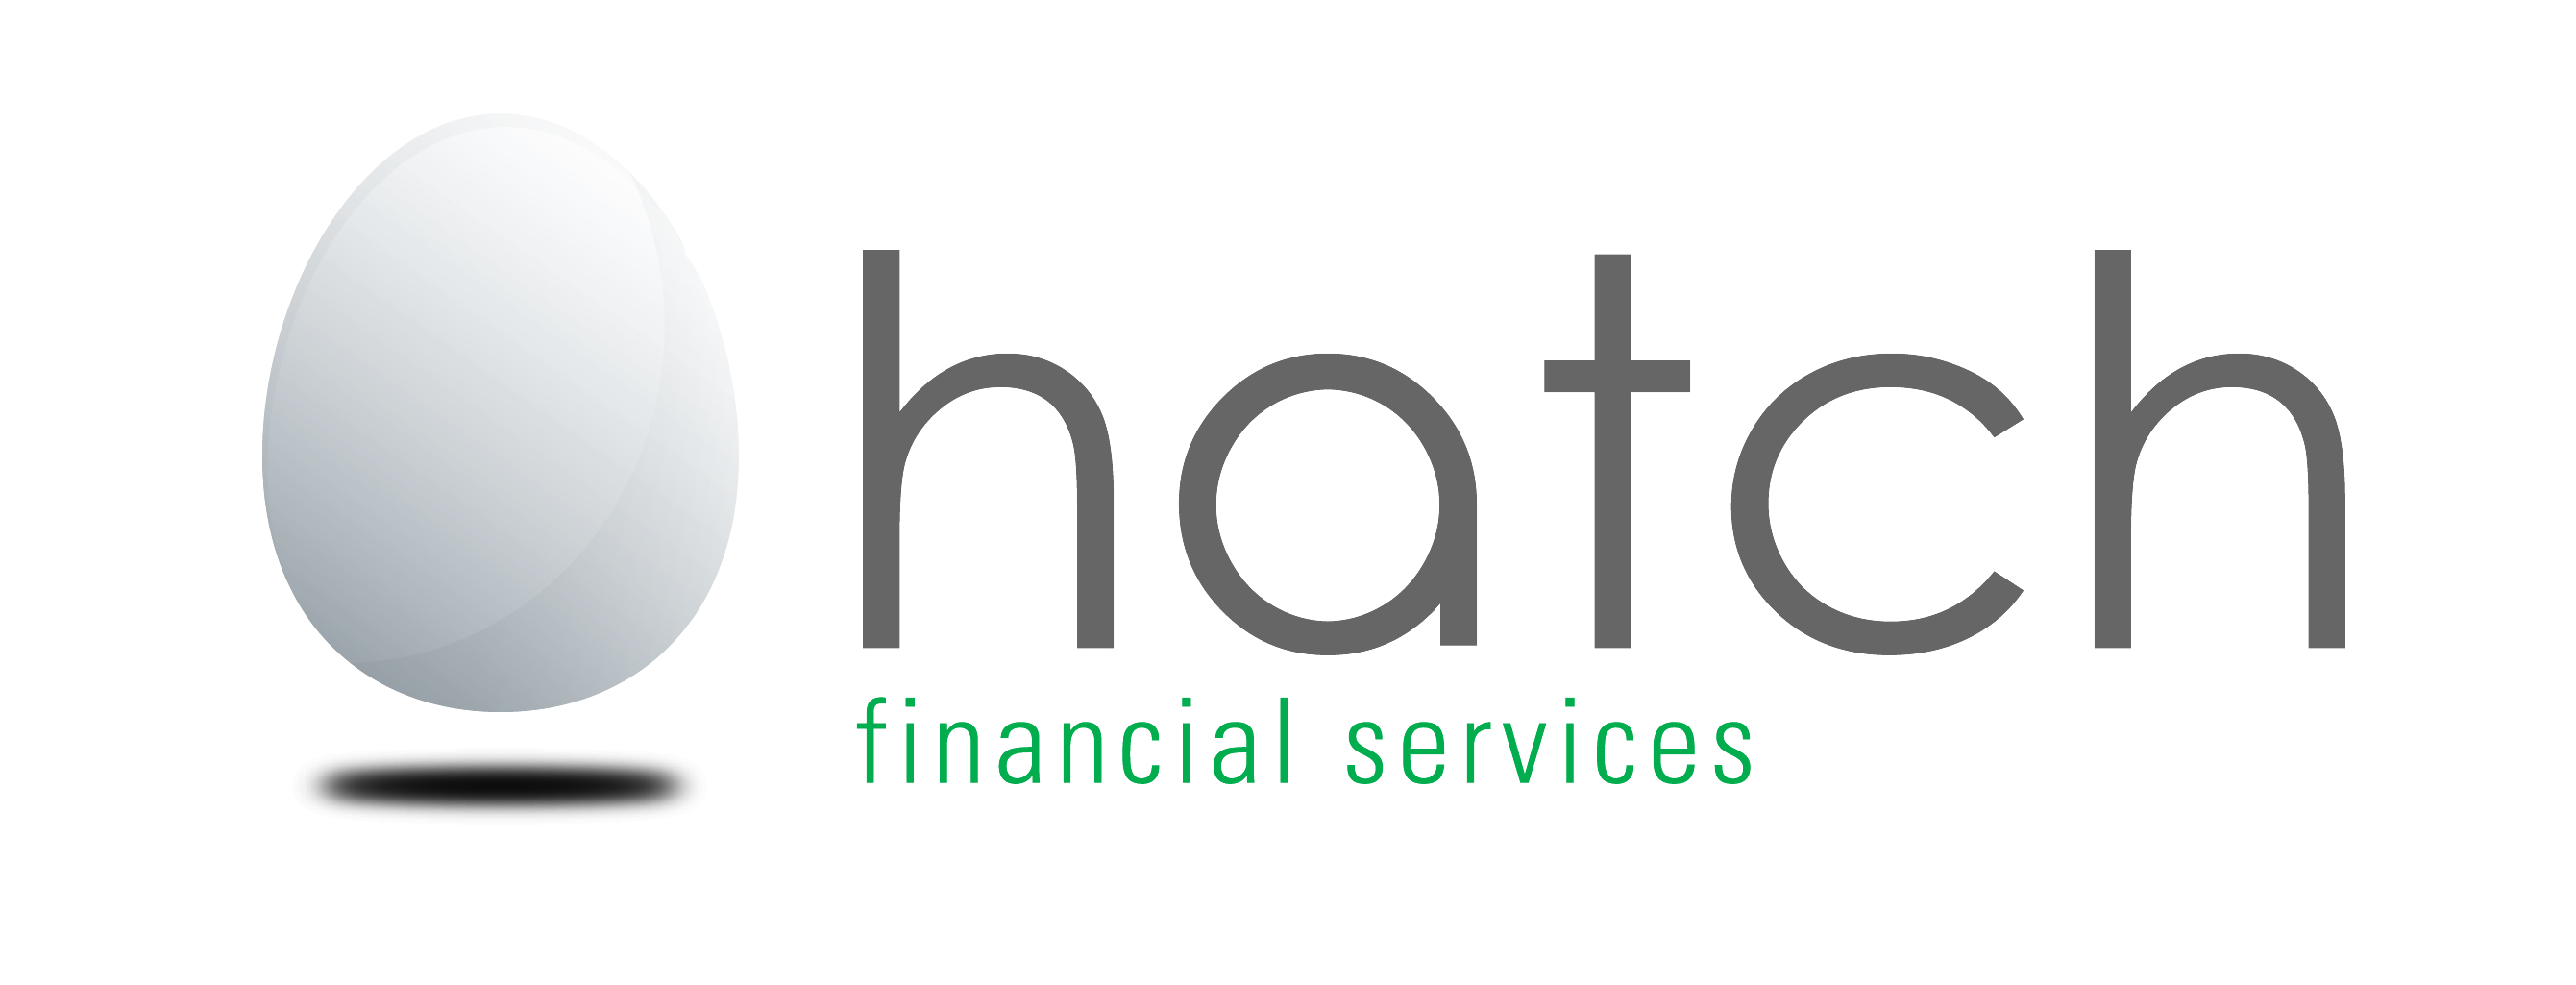 Hatch Financial Services